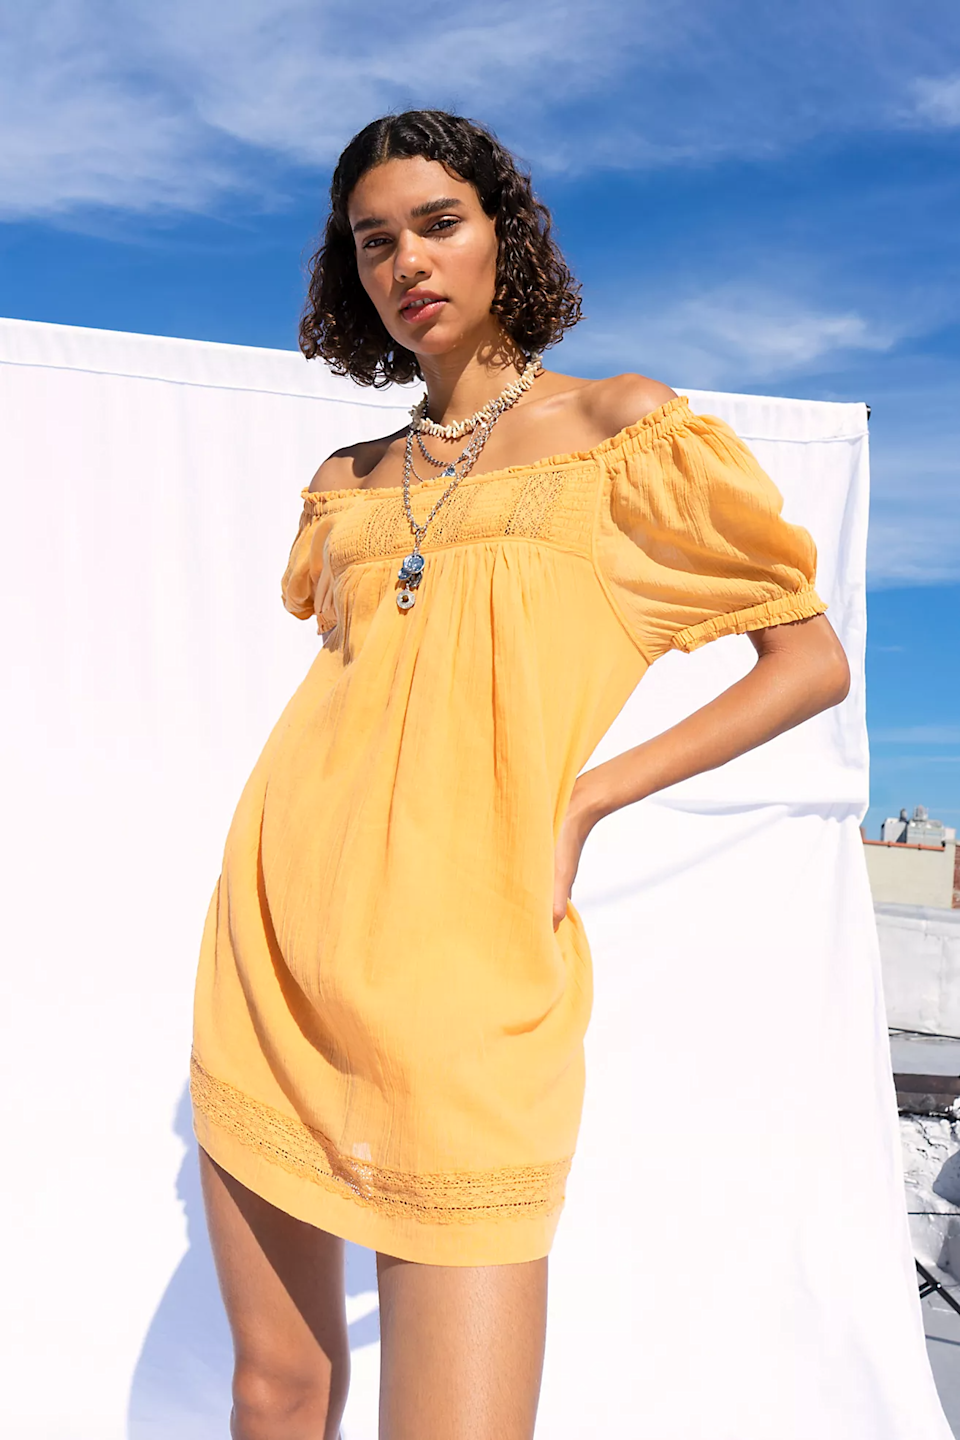 """<h2>Free People</h2><br><strong>Dates: </strong>Limited time<br><strong>Sale:</strong> Markdowns starting at $19.99<br><strong>Code:</strong> None<br><br><em>Shop <strong><a href=""""https://www.freepeople.com/sale-all/"""" rel=""""nofollow noopener"""" target=""""_blank"""" data-ylk=""""slk:Free People"""" class=""""link rapid-noclick-resp"""">Free People</a></strong></em><br><br><strong>Endless Summer</strong> La Mer One-Piece, $, available at <a href=""""https://go.skimresources.com/?id=30283X879131&url=https%3A%2F%2Fwww.freepeople.com%2Fsale-dresses%2F%3Fsort%3Dtile.reviews.averageRating%26order%3DDescending"""" rel=""""nofollow noopener"""" target=""""_blank"""" data-ylk=""""slk:Free People"""" class=""""link rapid-noclick-resp"""">Free People</a>"""